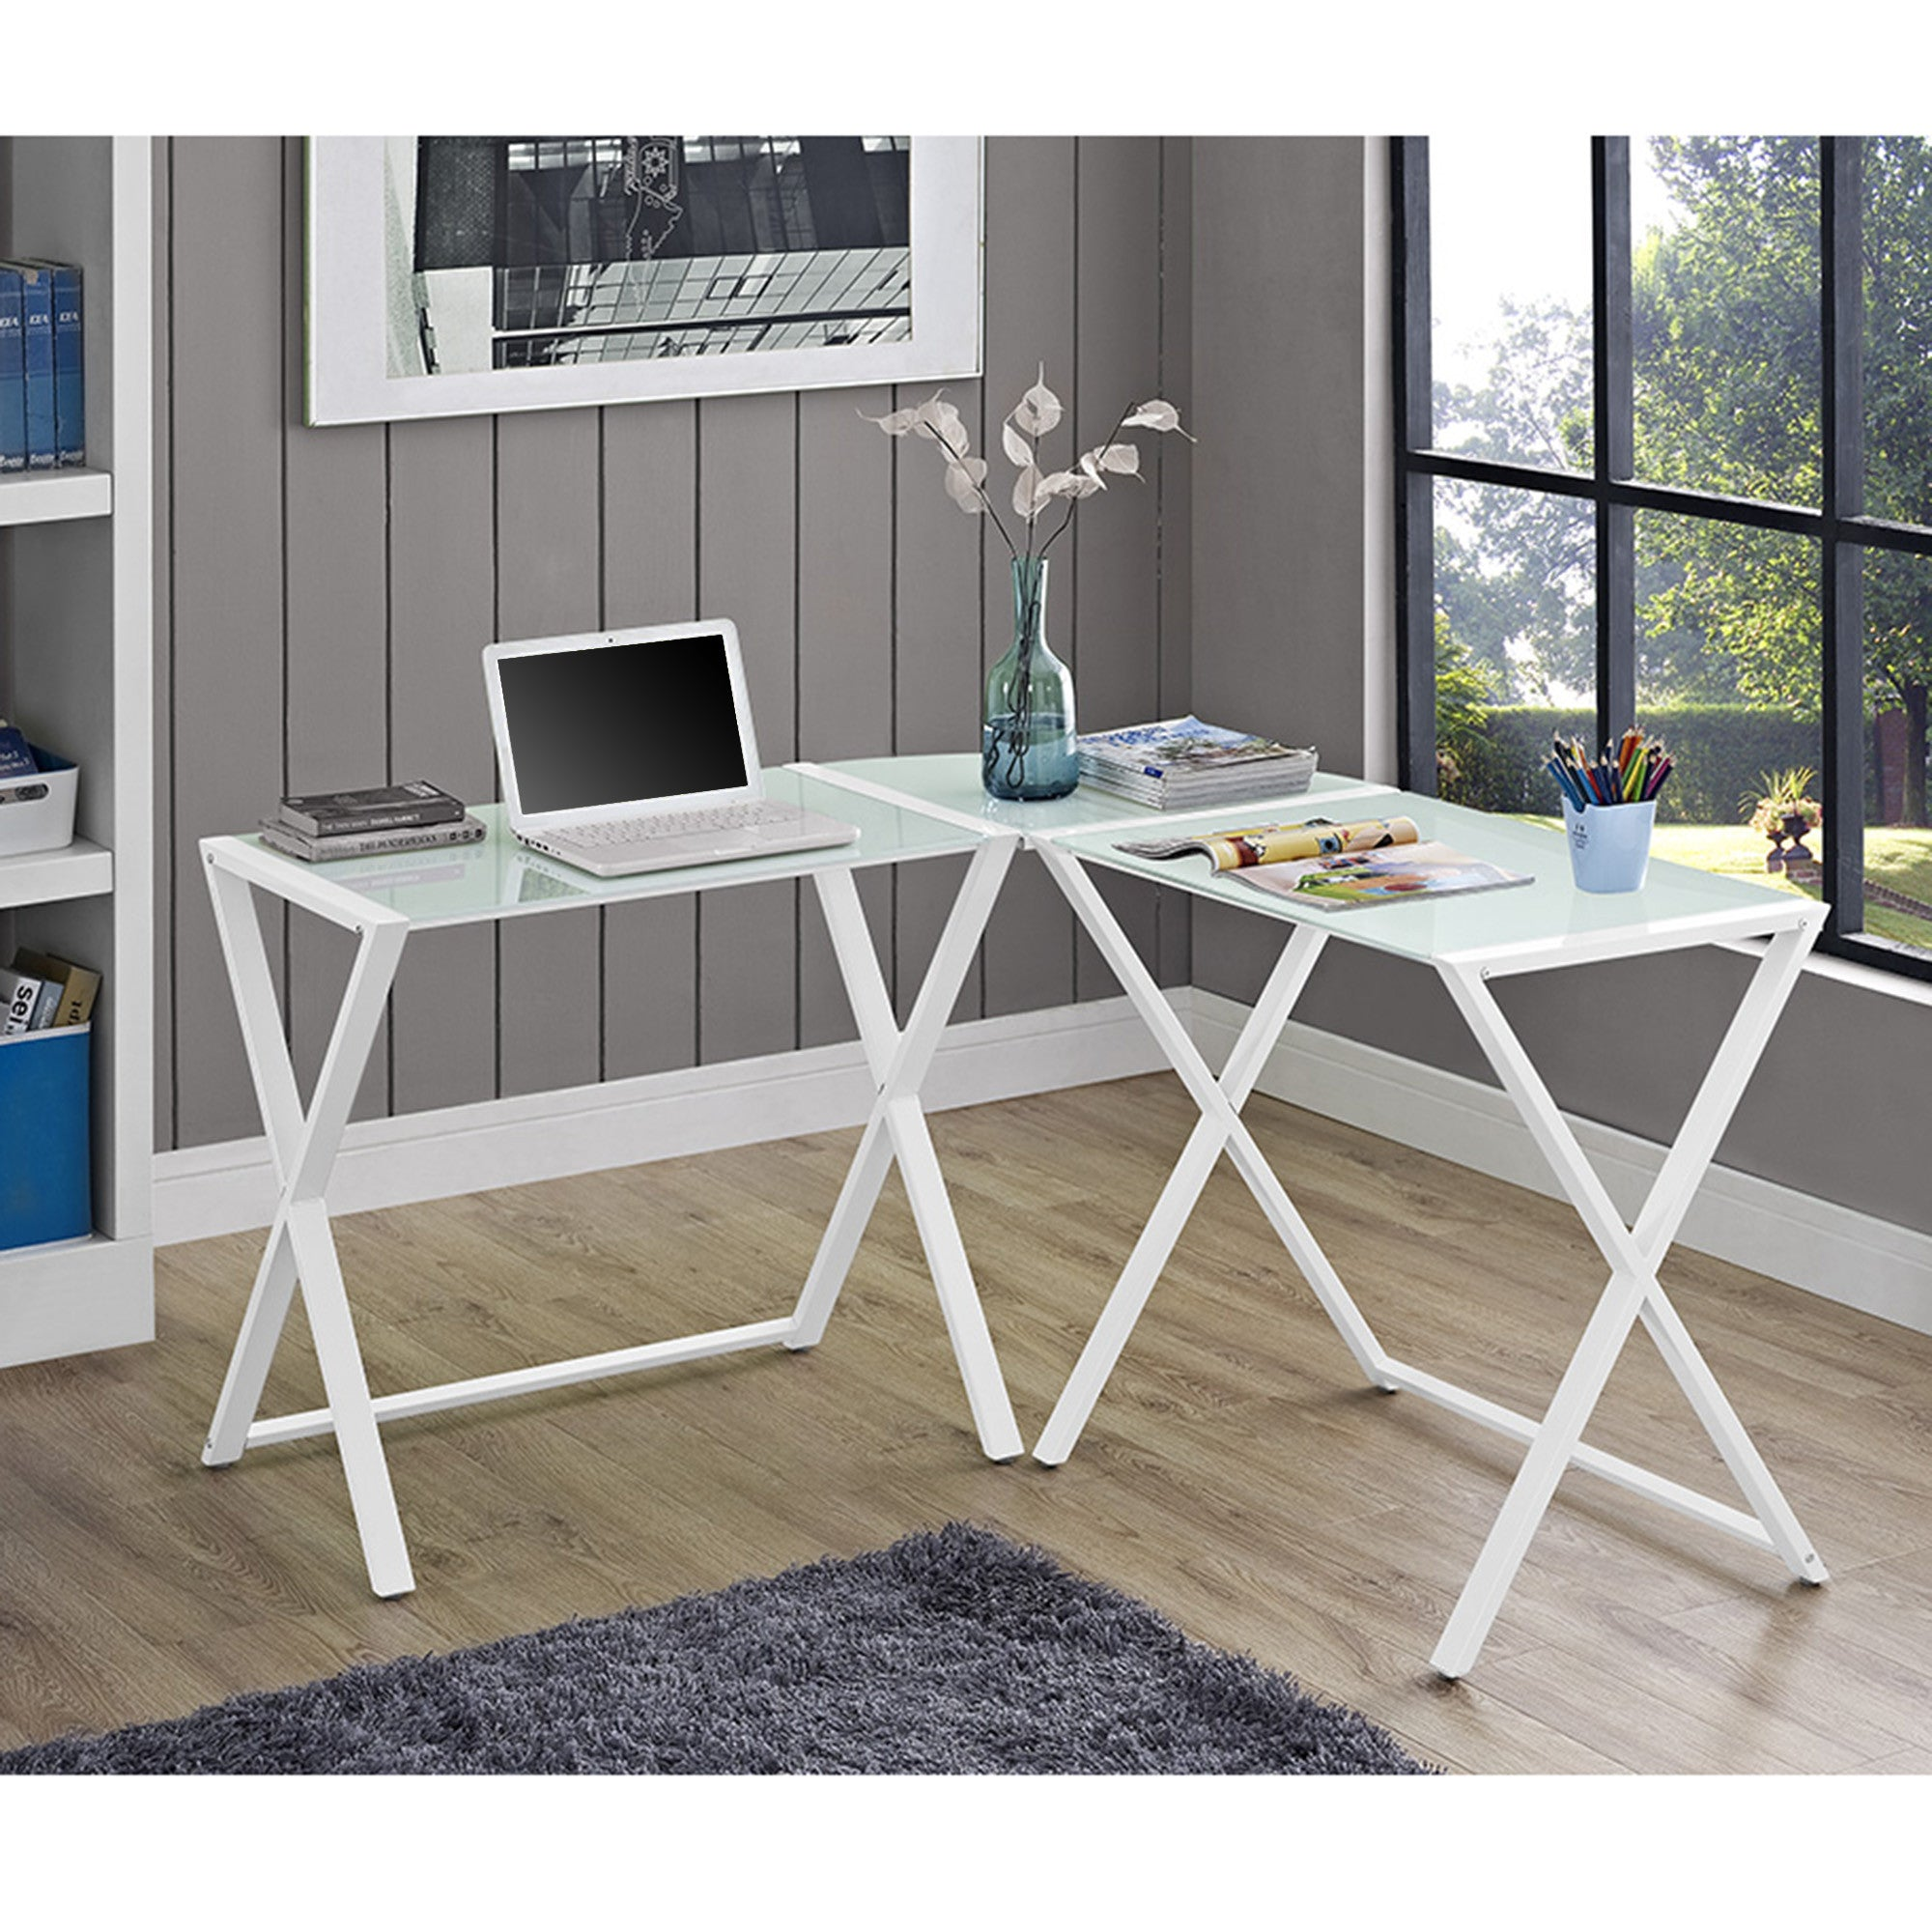 White Glass & Steel X-frame Corner Office Desk